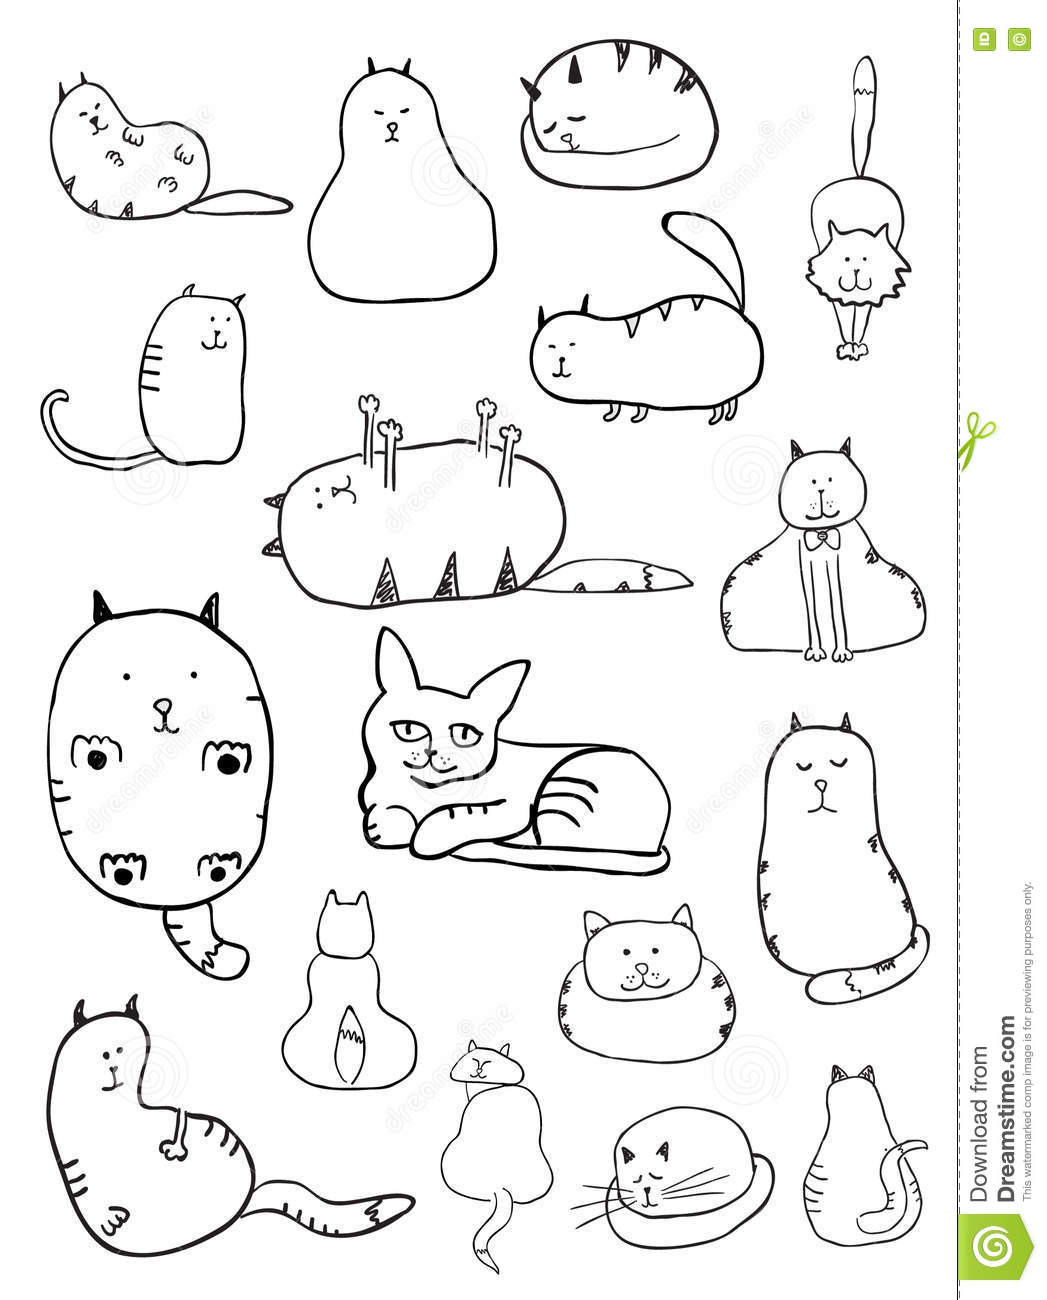 cat sketches stock vector illustration of grace doodle 63926295